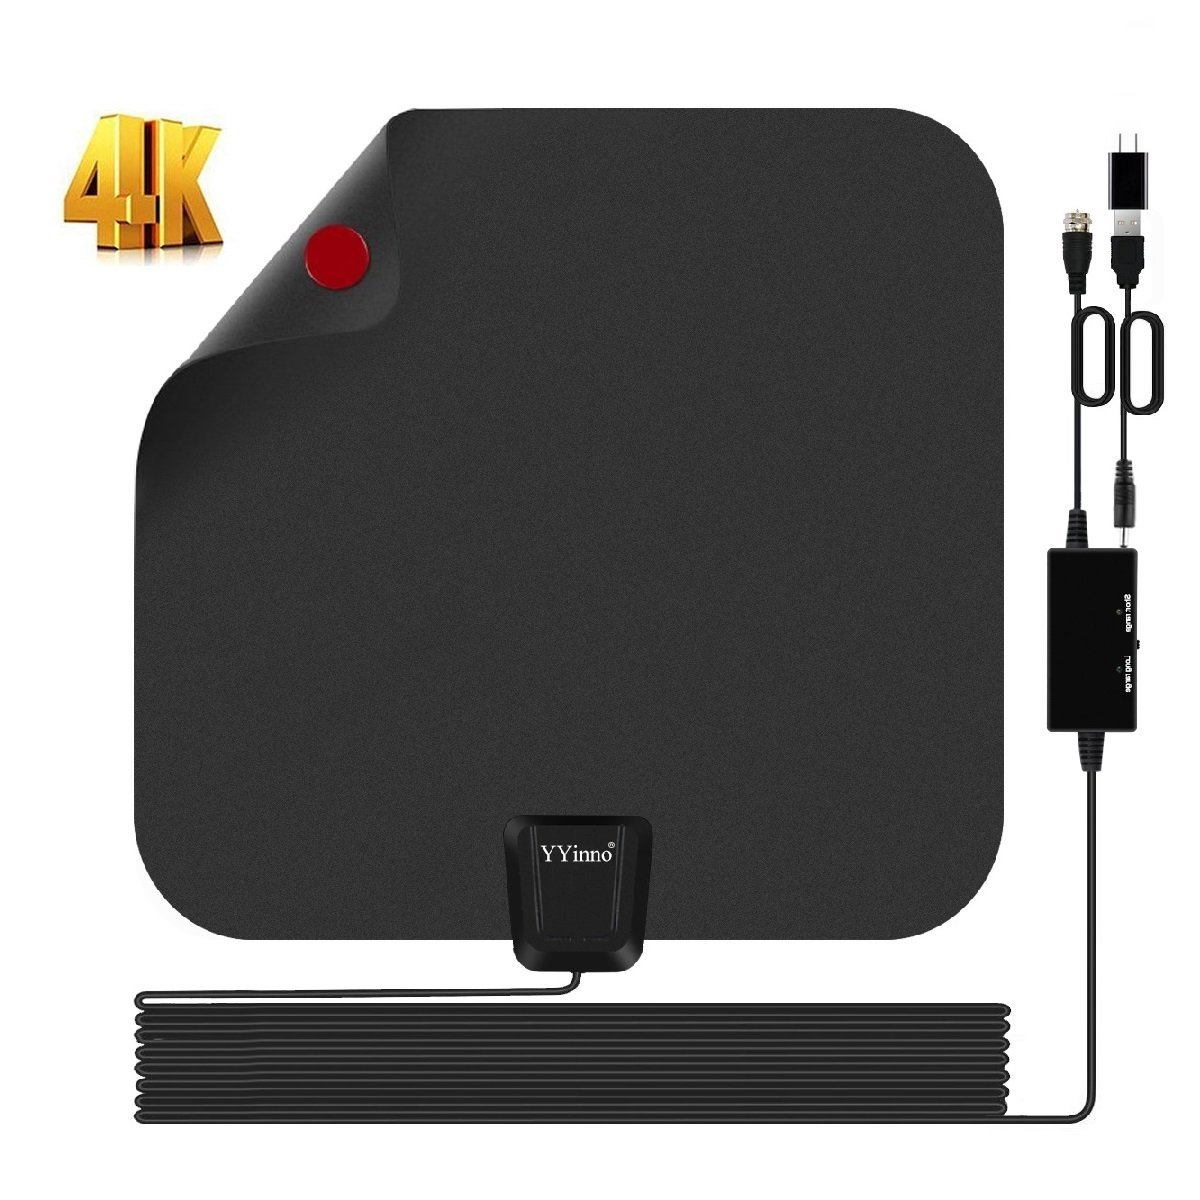 TV Antenna Indoor,HDTV Antenna TV Digital HD 4K,80 Miles Range Max,with Powerful Amplifier Signal Booster and 16.5ft Coax Cable,2018 Newest by YYinno